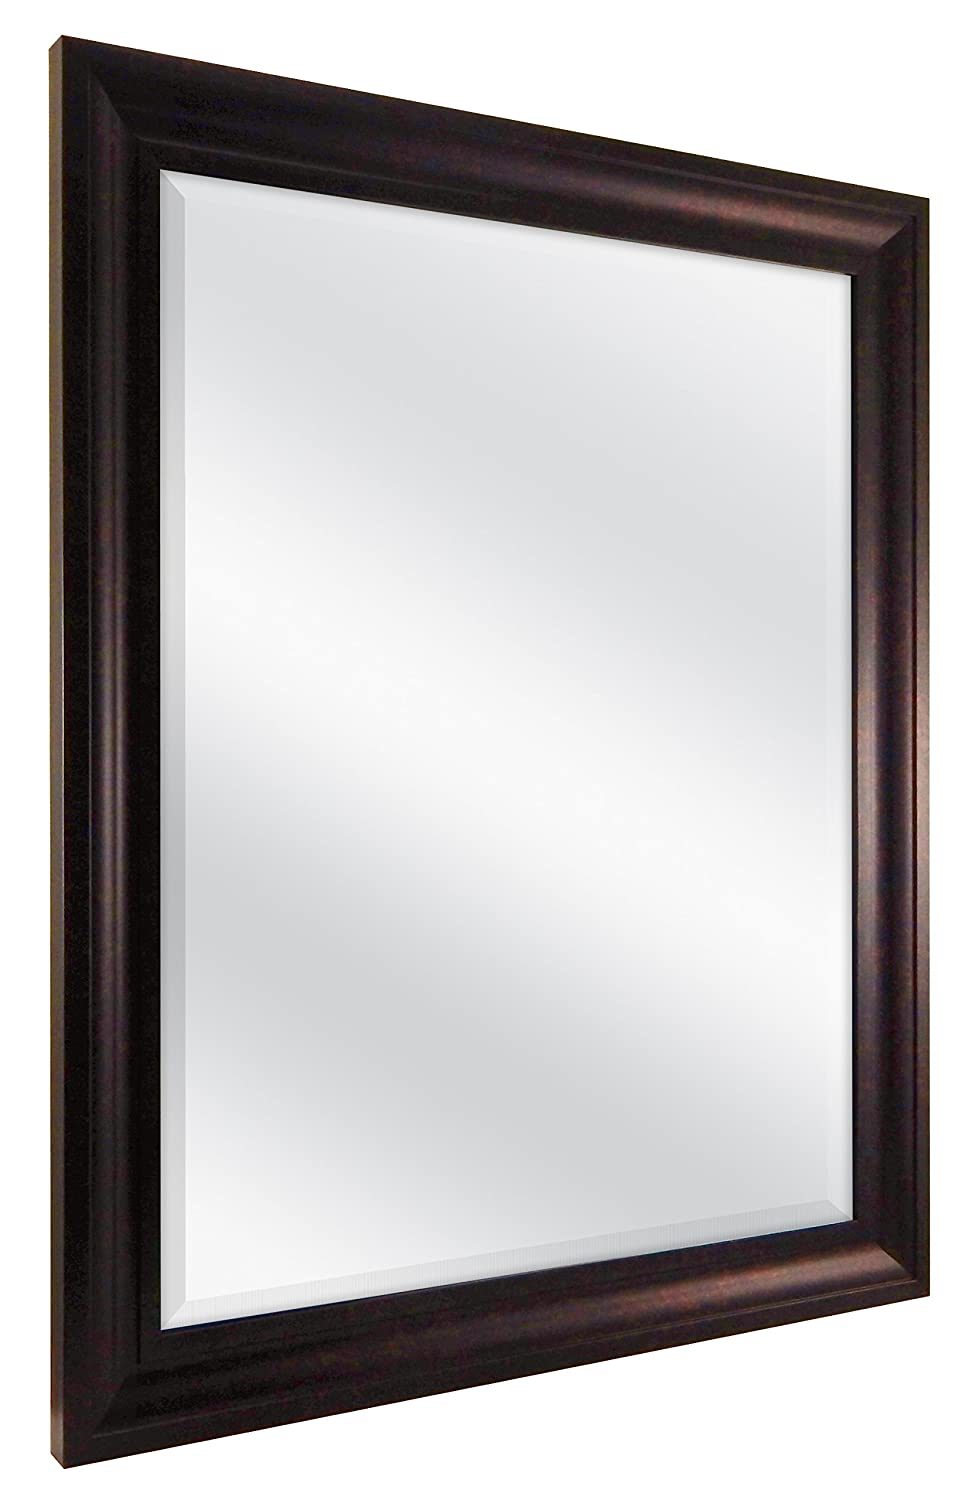 MCS 21.5x27.5 Inch Wall Mirror, 26.5x32.5 Inch Overall Size, Bronze (20451)